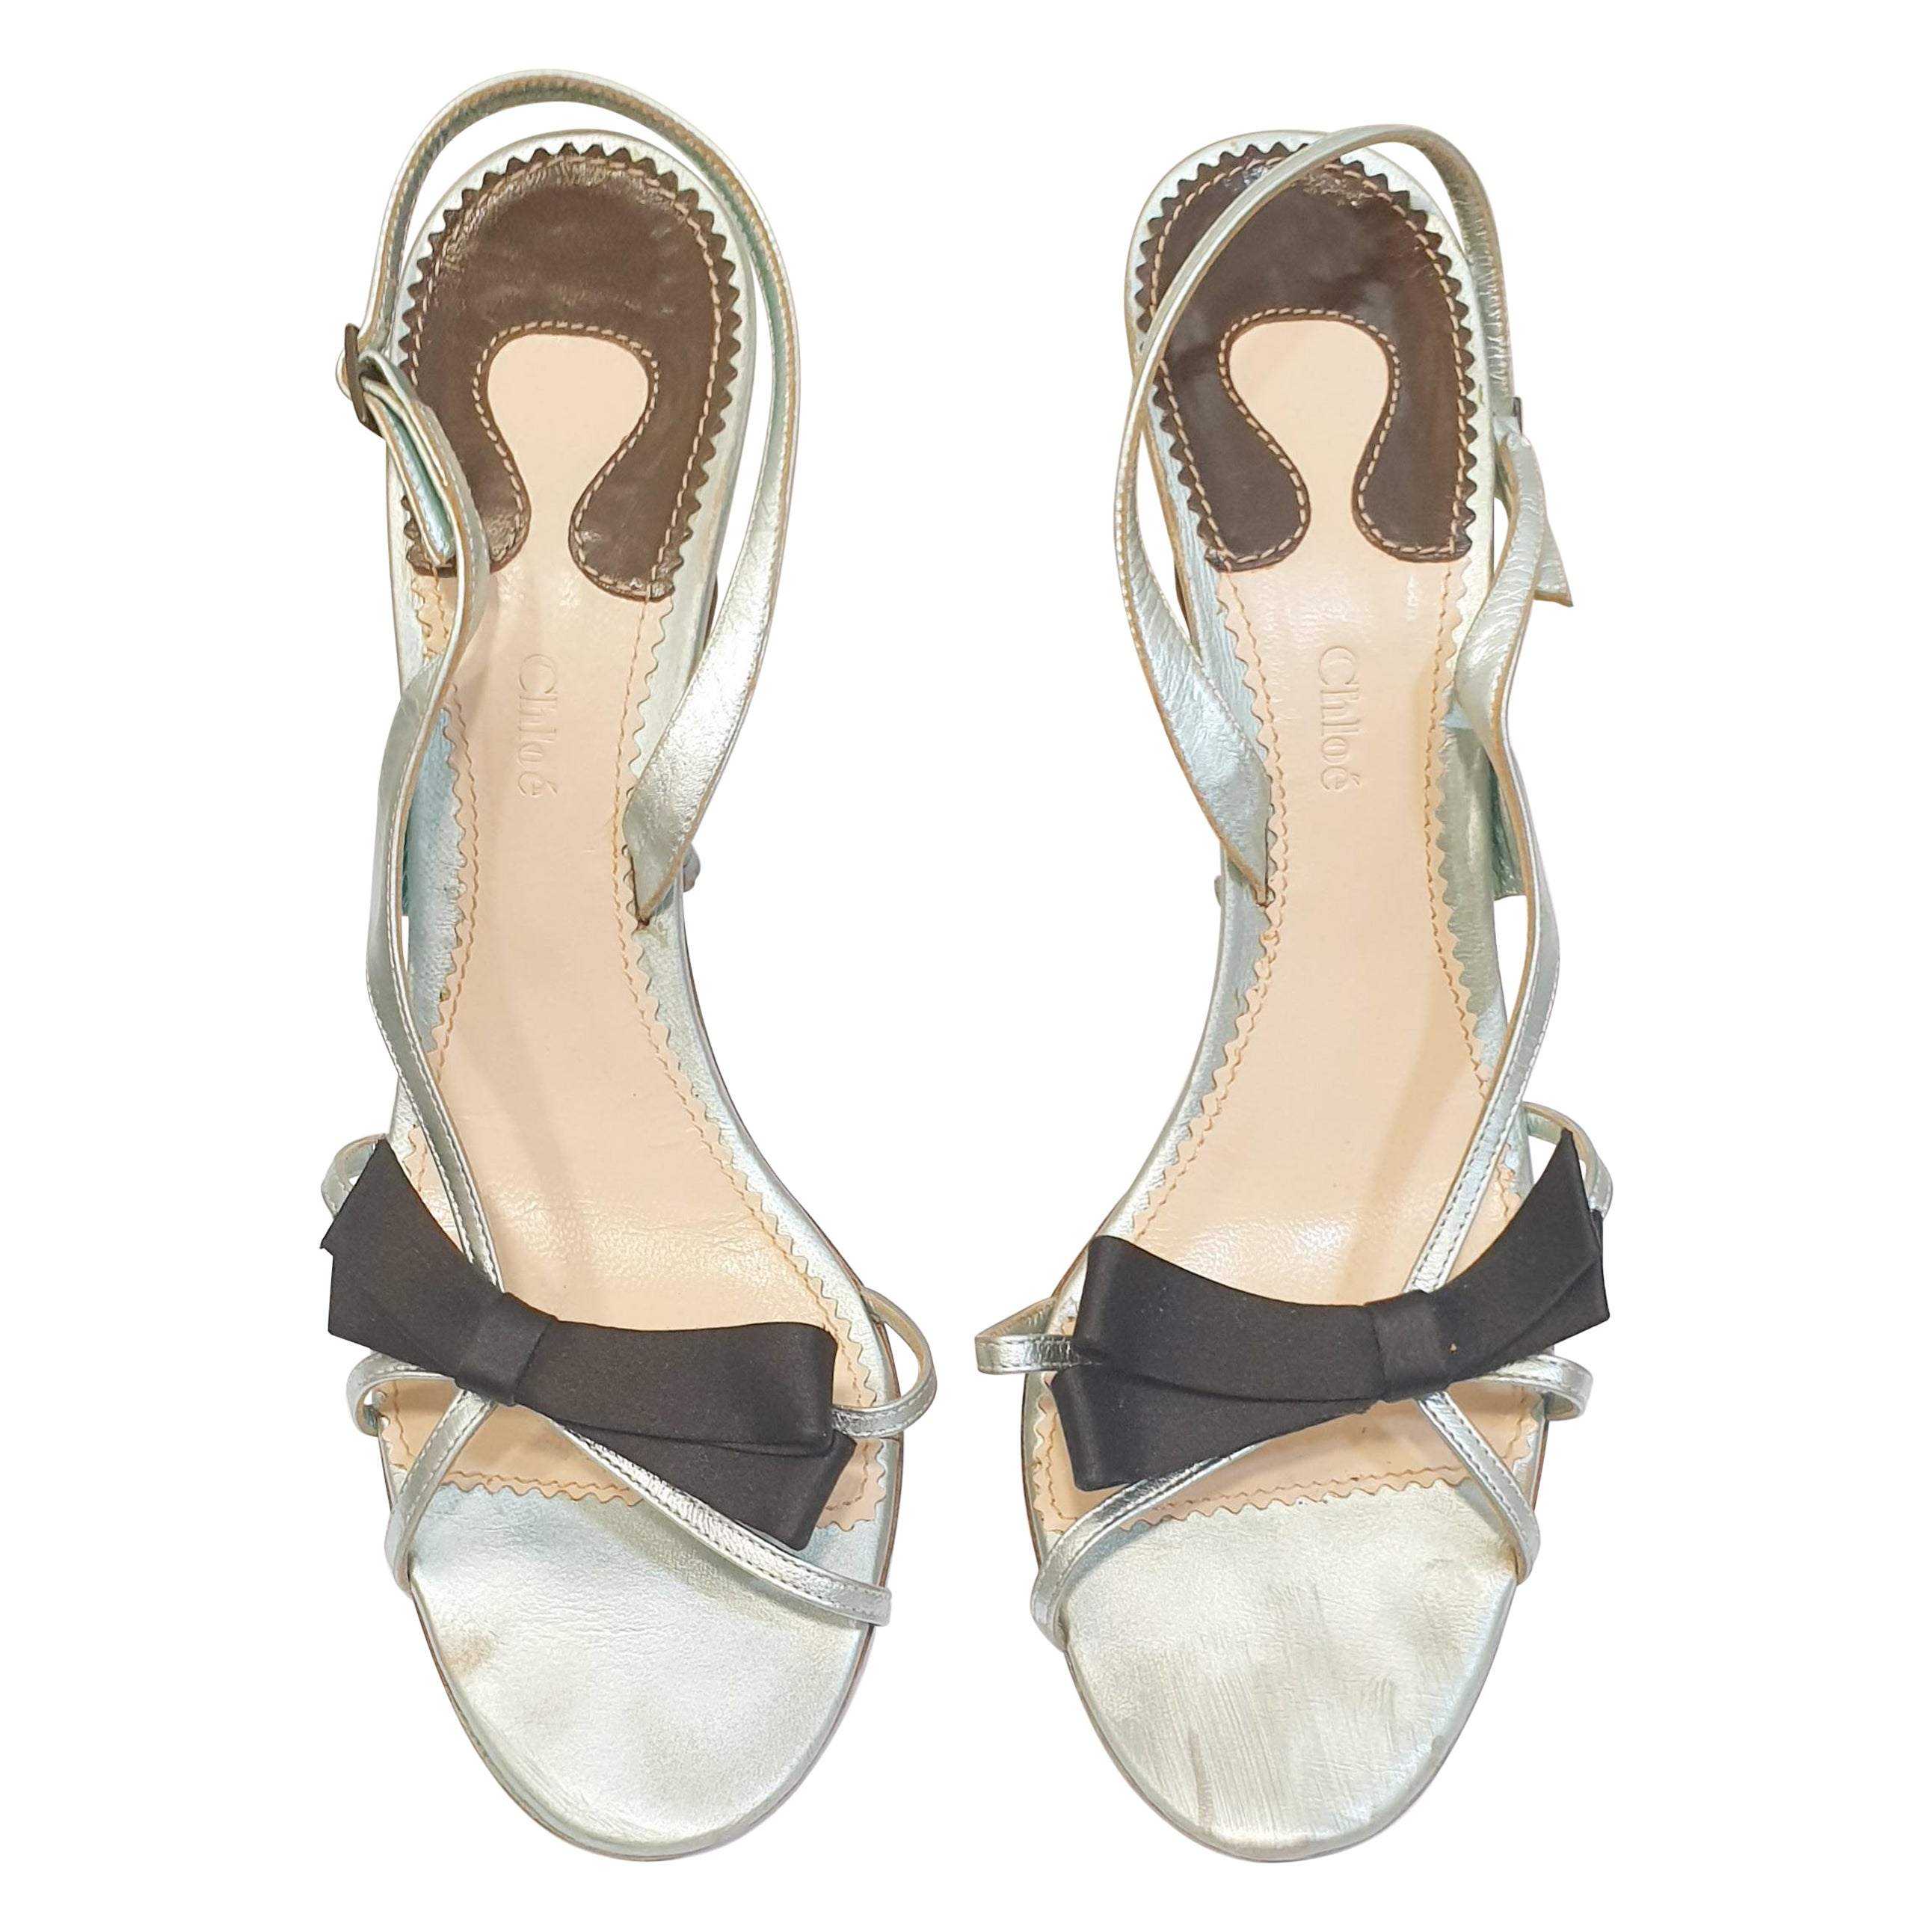 Light Blue metallic  heeled sandals with with black silk lace by Chloé